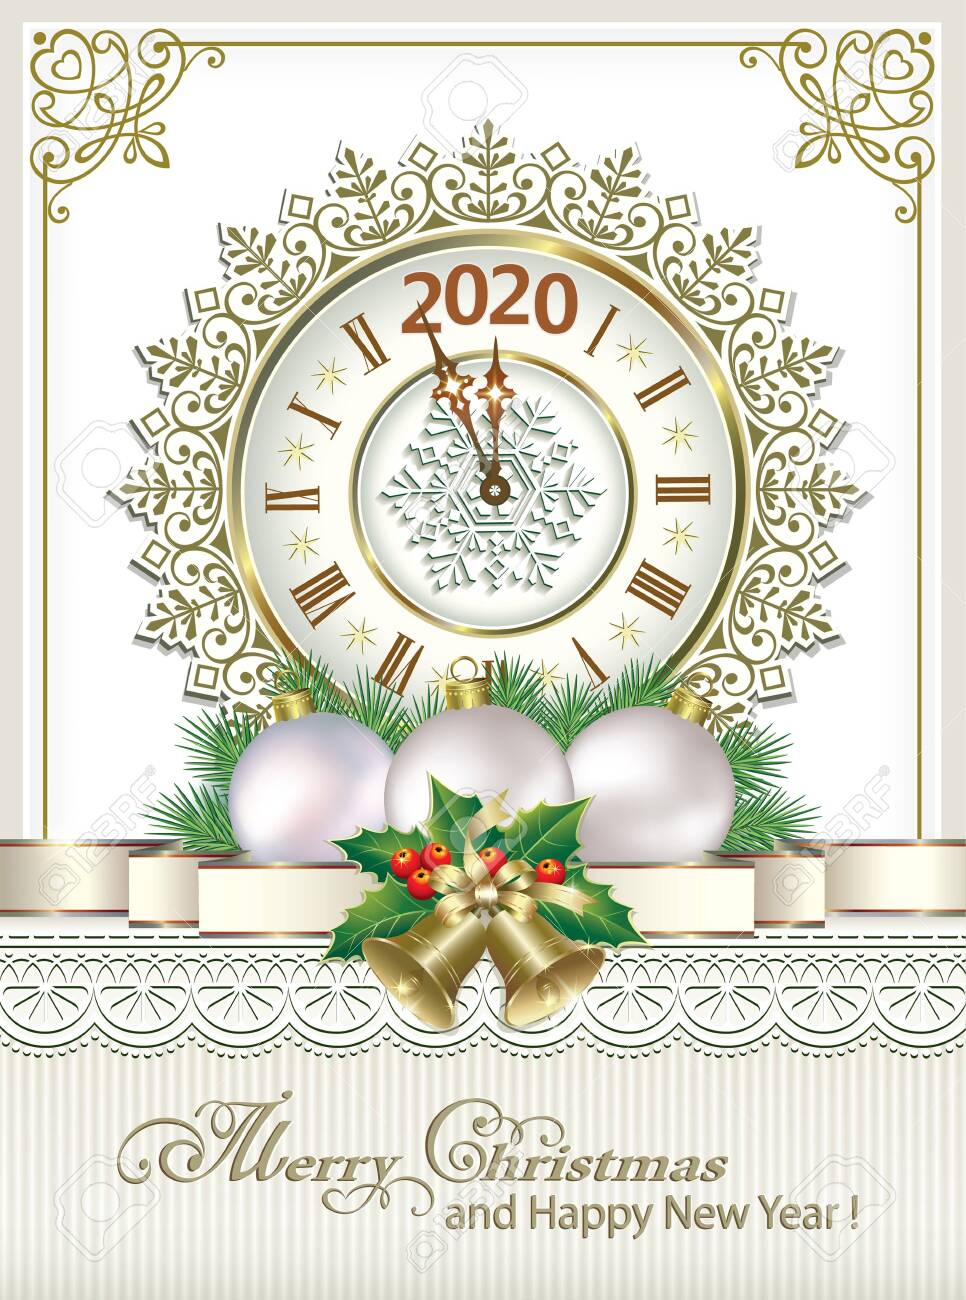 E Card Christmas 2020 2020 Merry Christmas And Happy New Year. Greeting Card With Clock